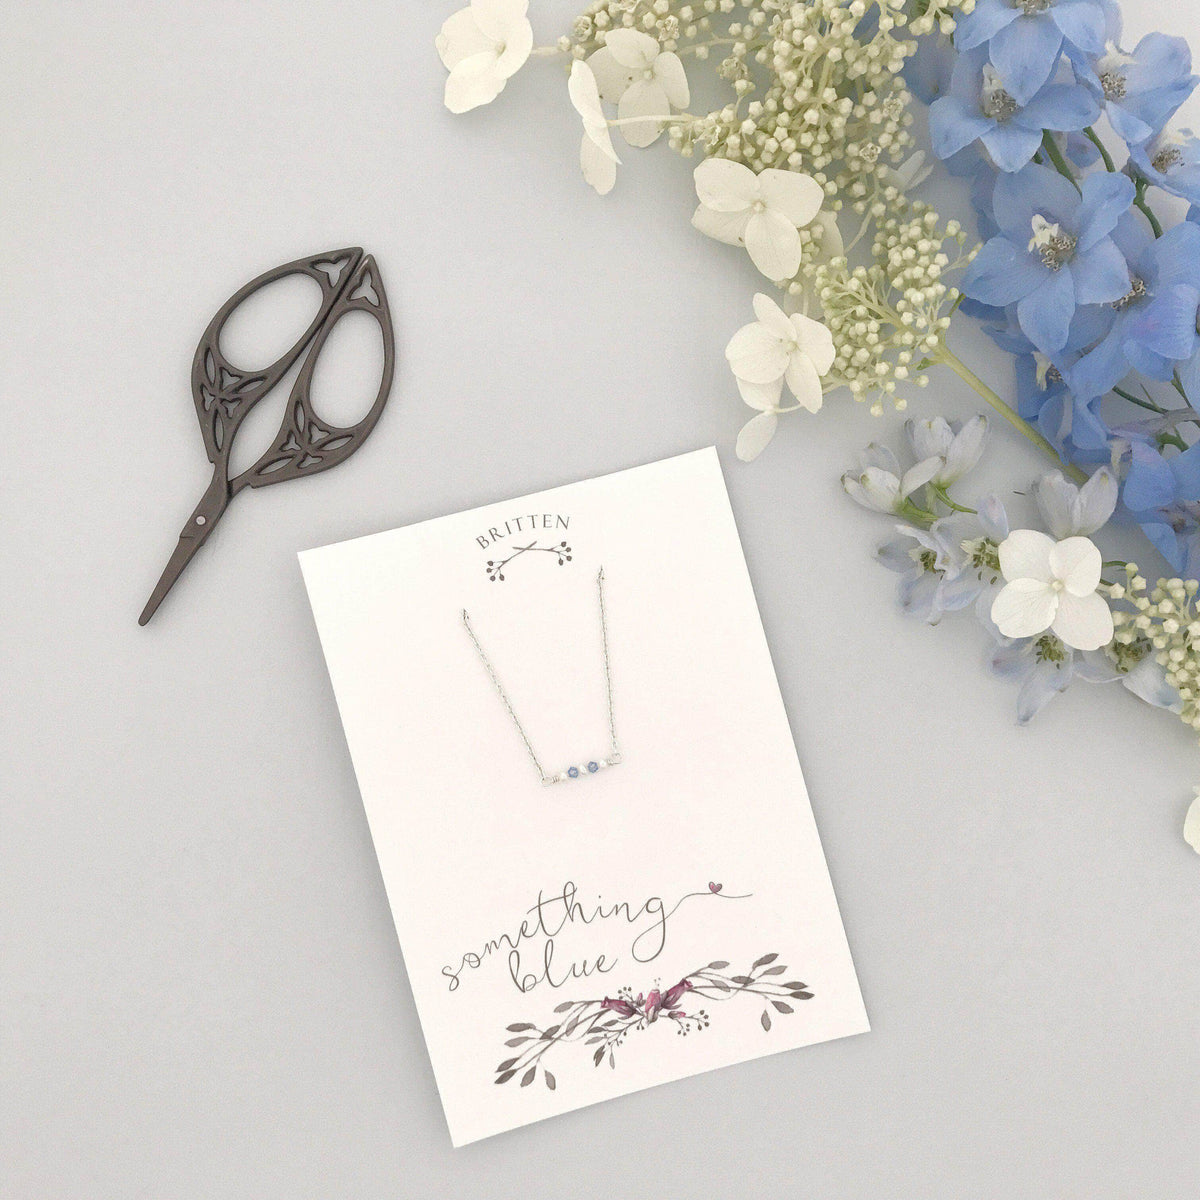 Wedding Necklace Silver 'Something blue' gift silver necklace - 'Mollie'